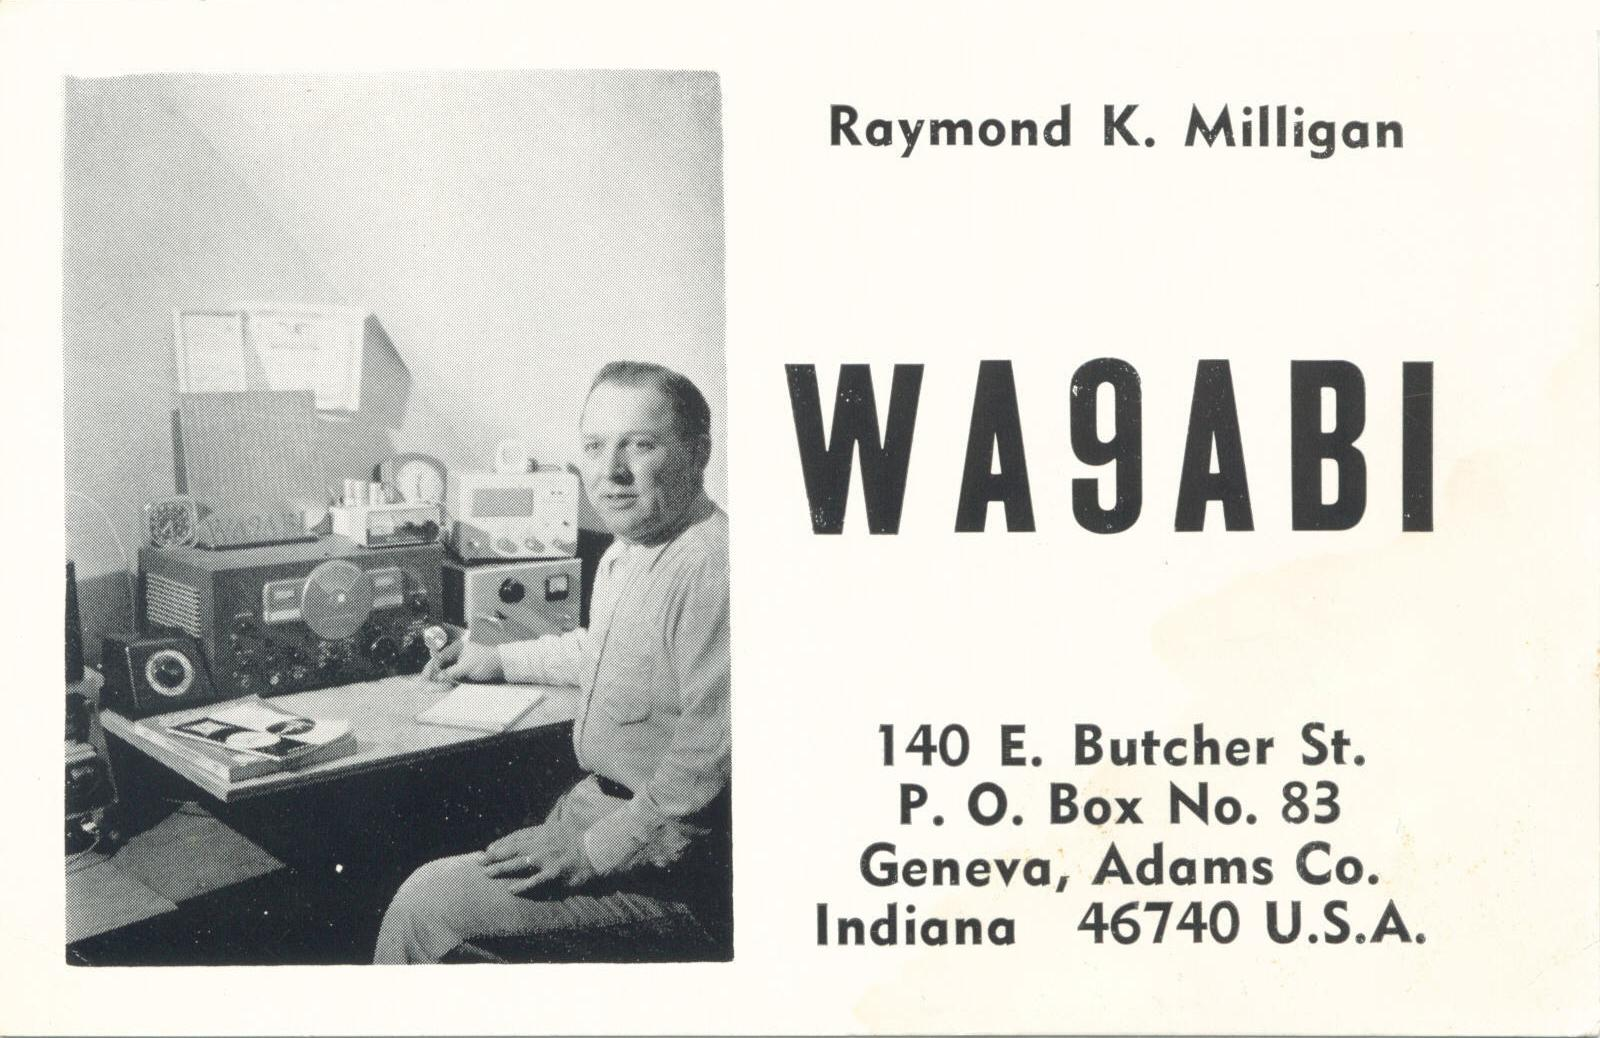 Dad's best friend, Raymond got us started into Ham Radio